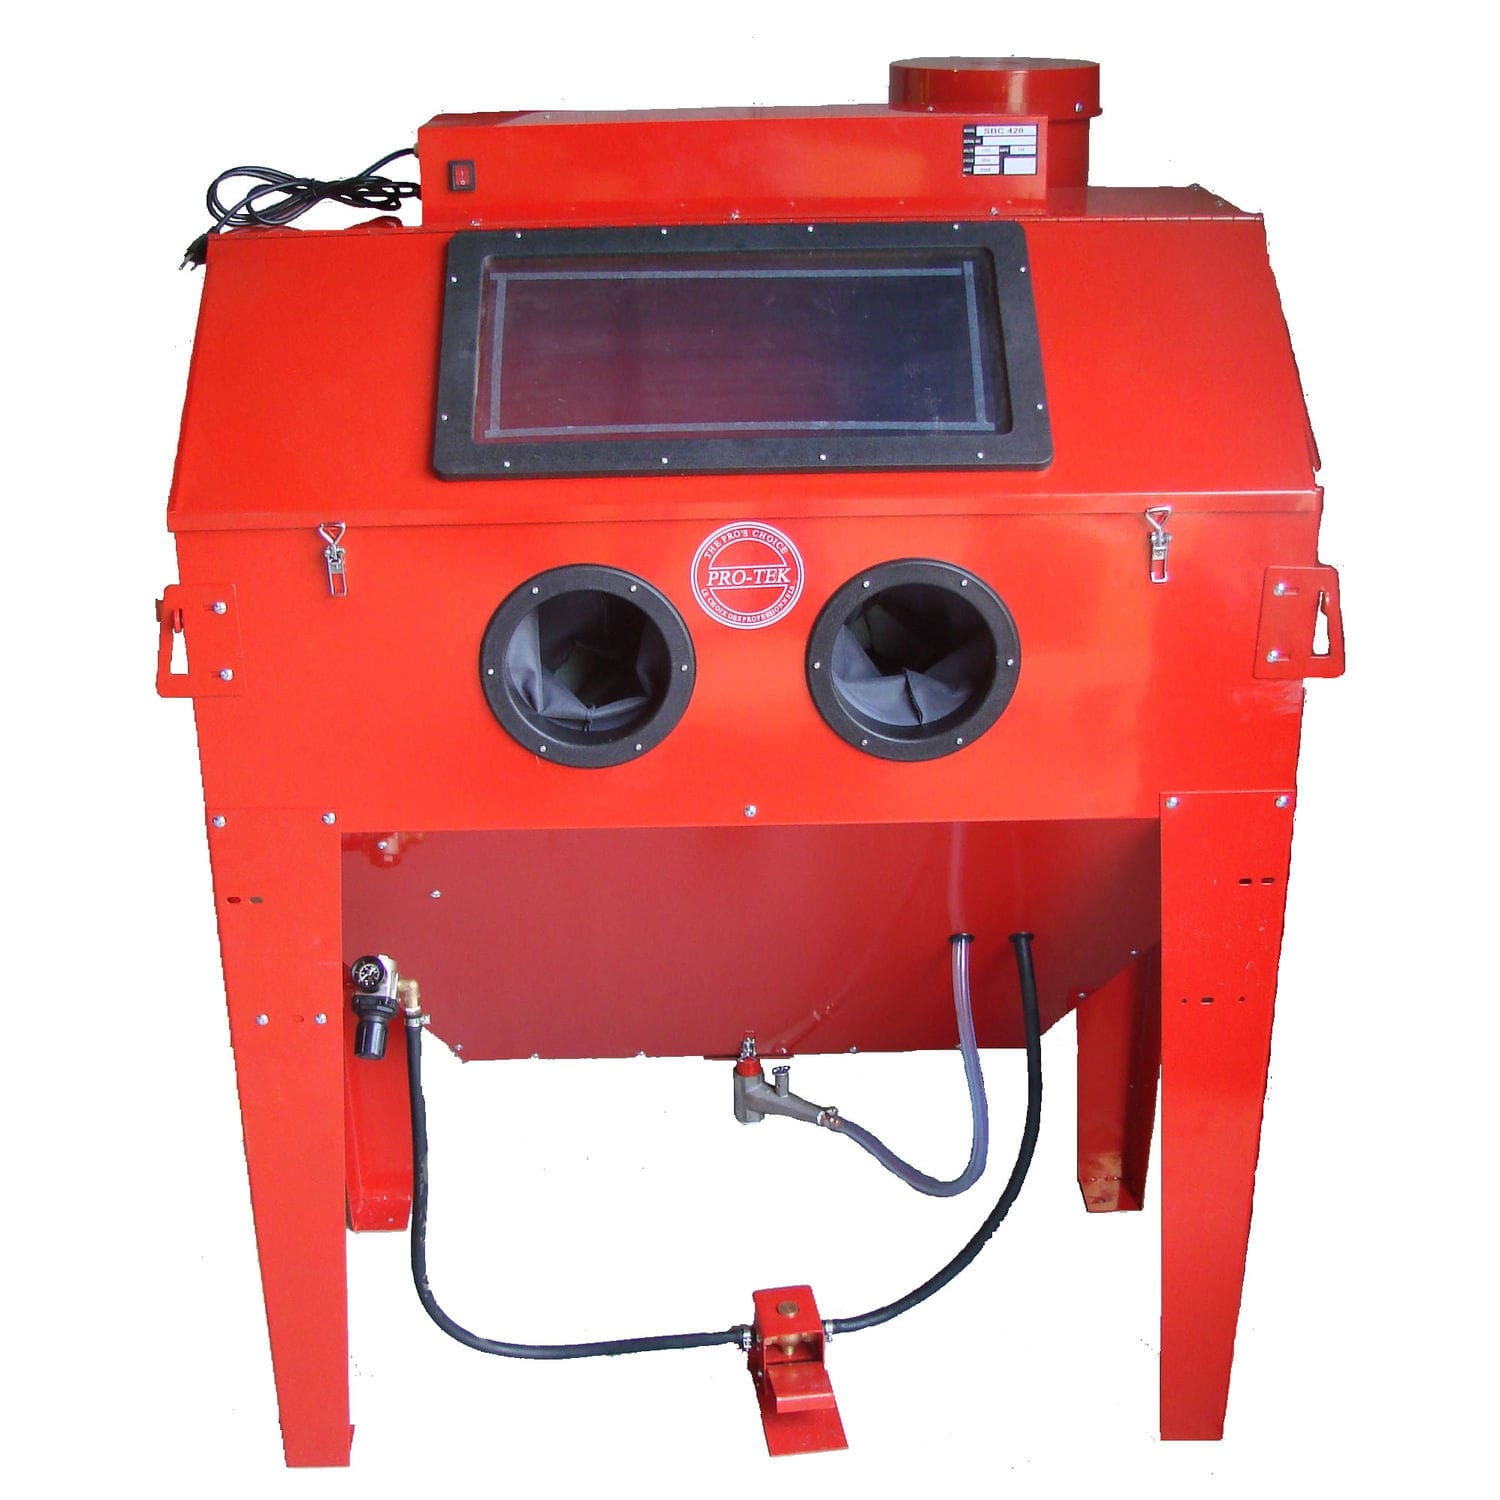 Sand Blaster Cabinet Suction Blast Cabinet Manual For Heavy Duty Applications Sbc